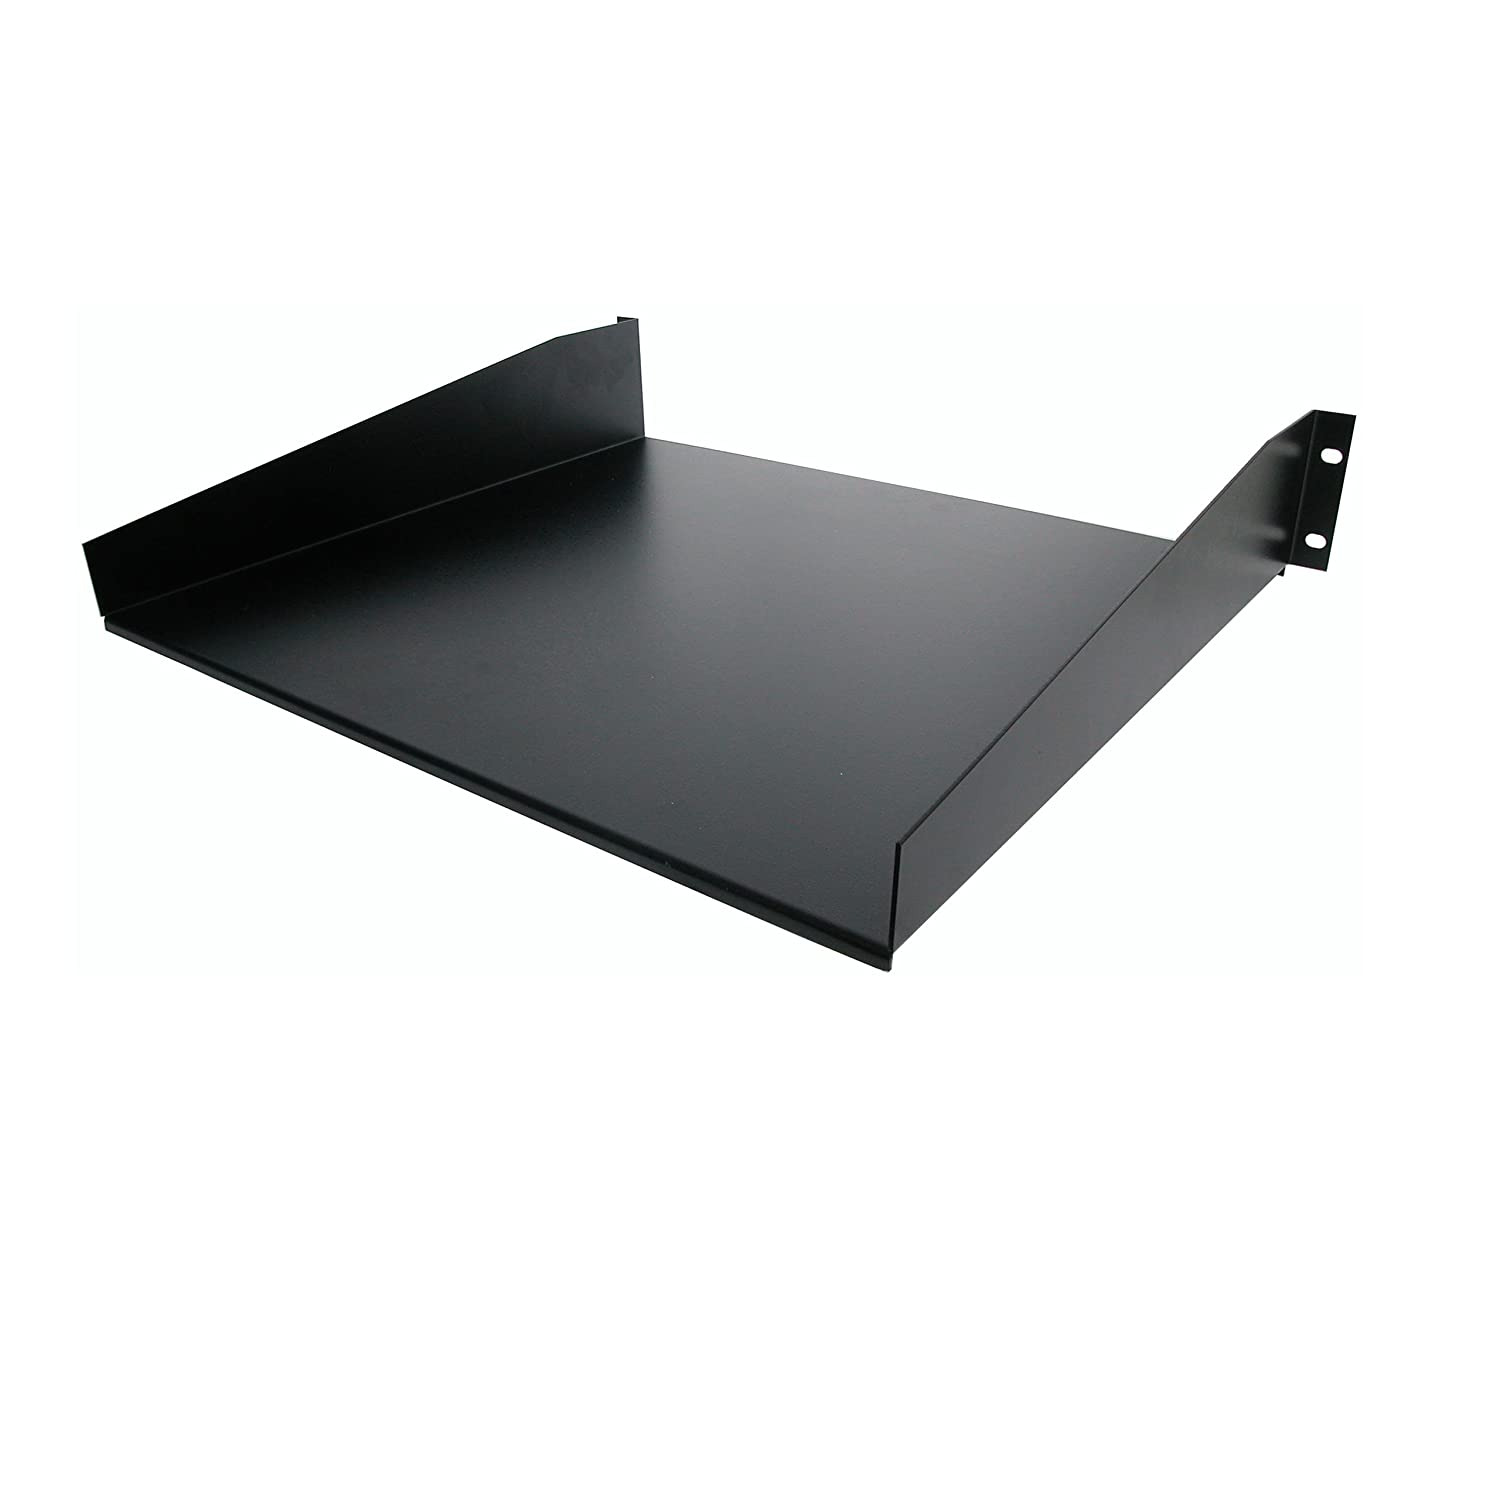 acrylic jpg rack inch dp larger black server uk cabinet startech co wallmount with amazon view